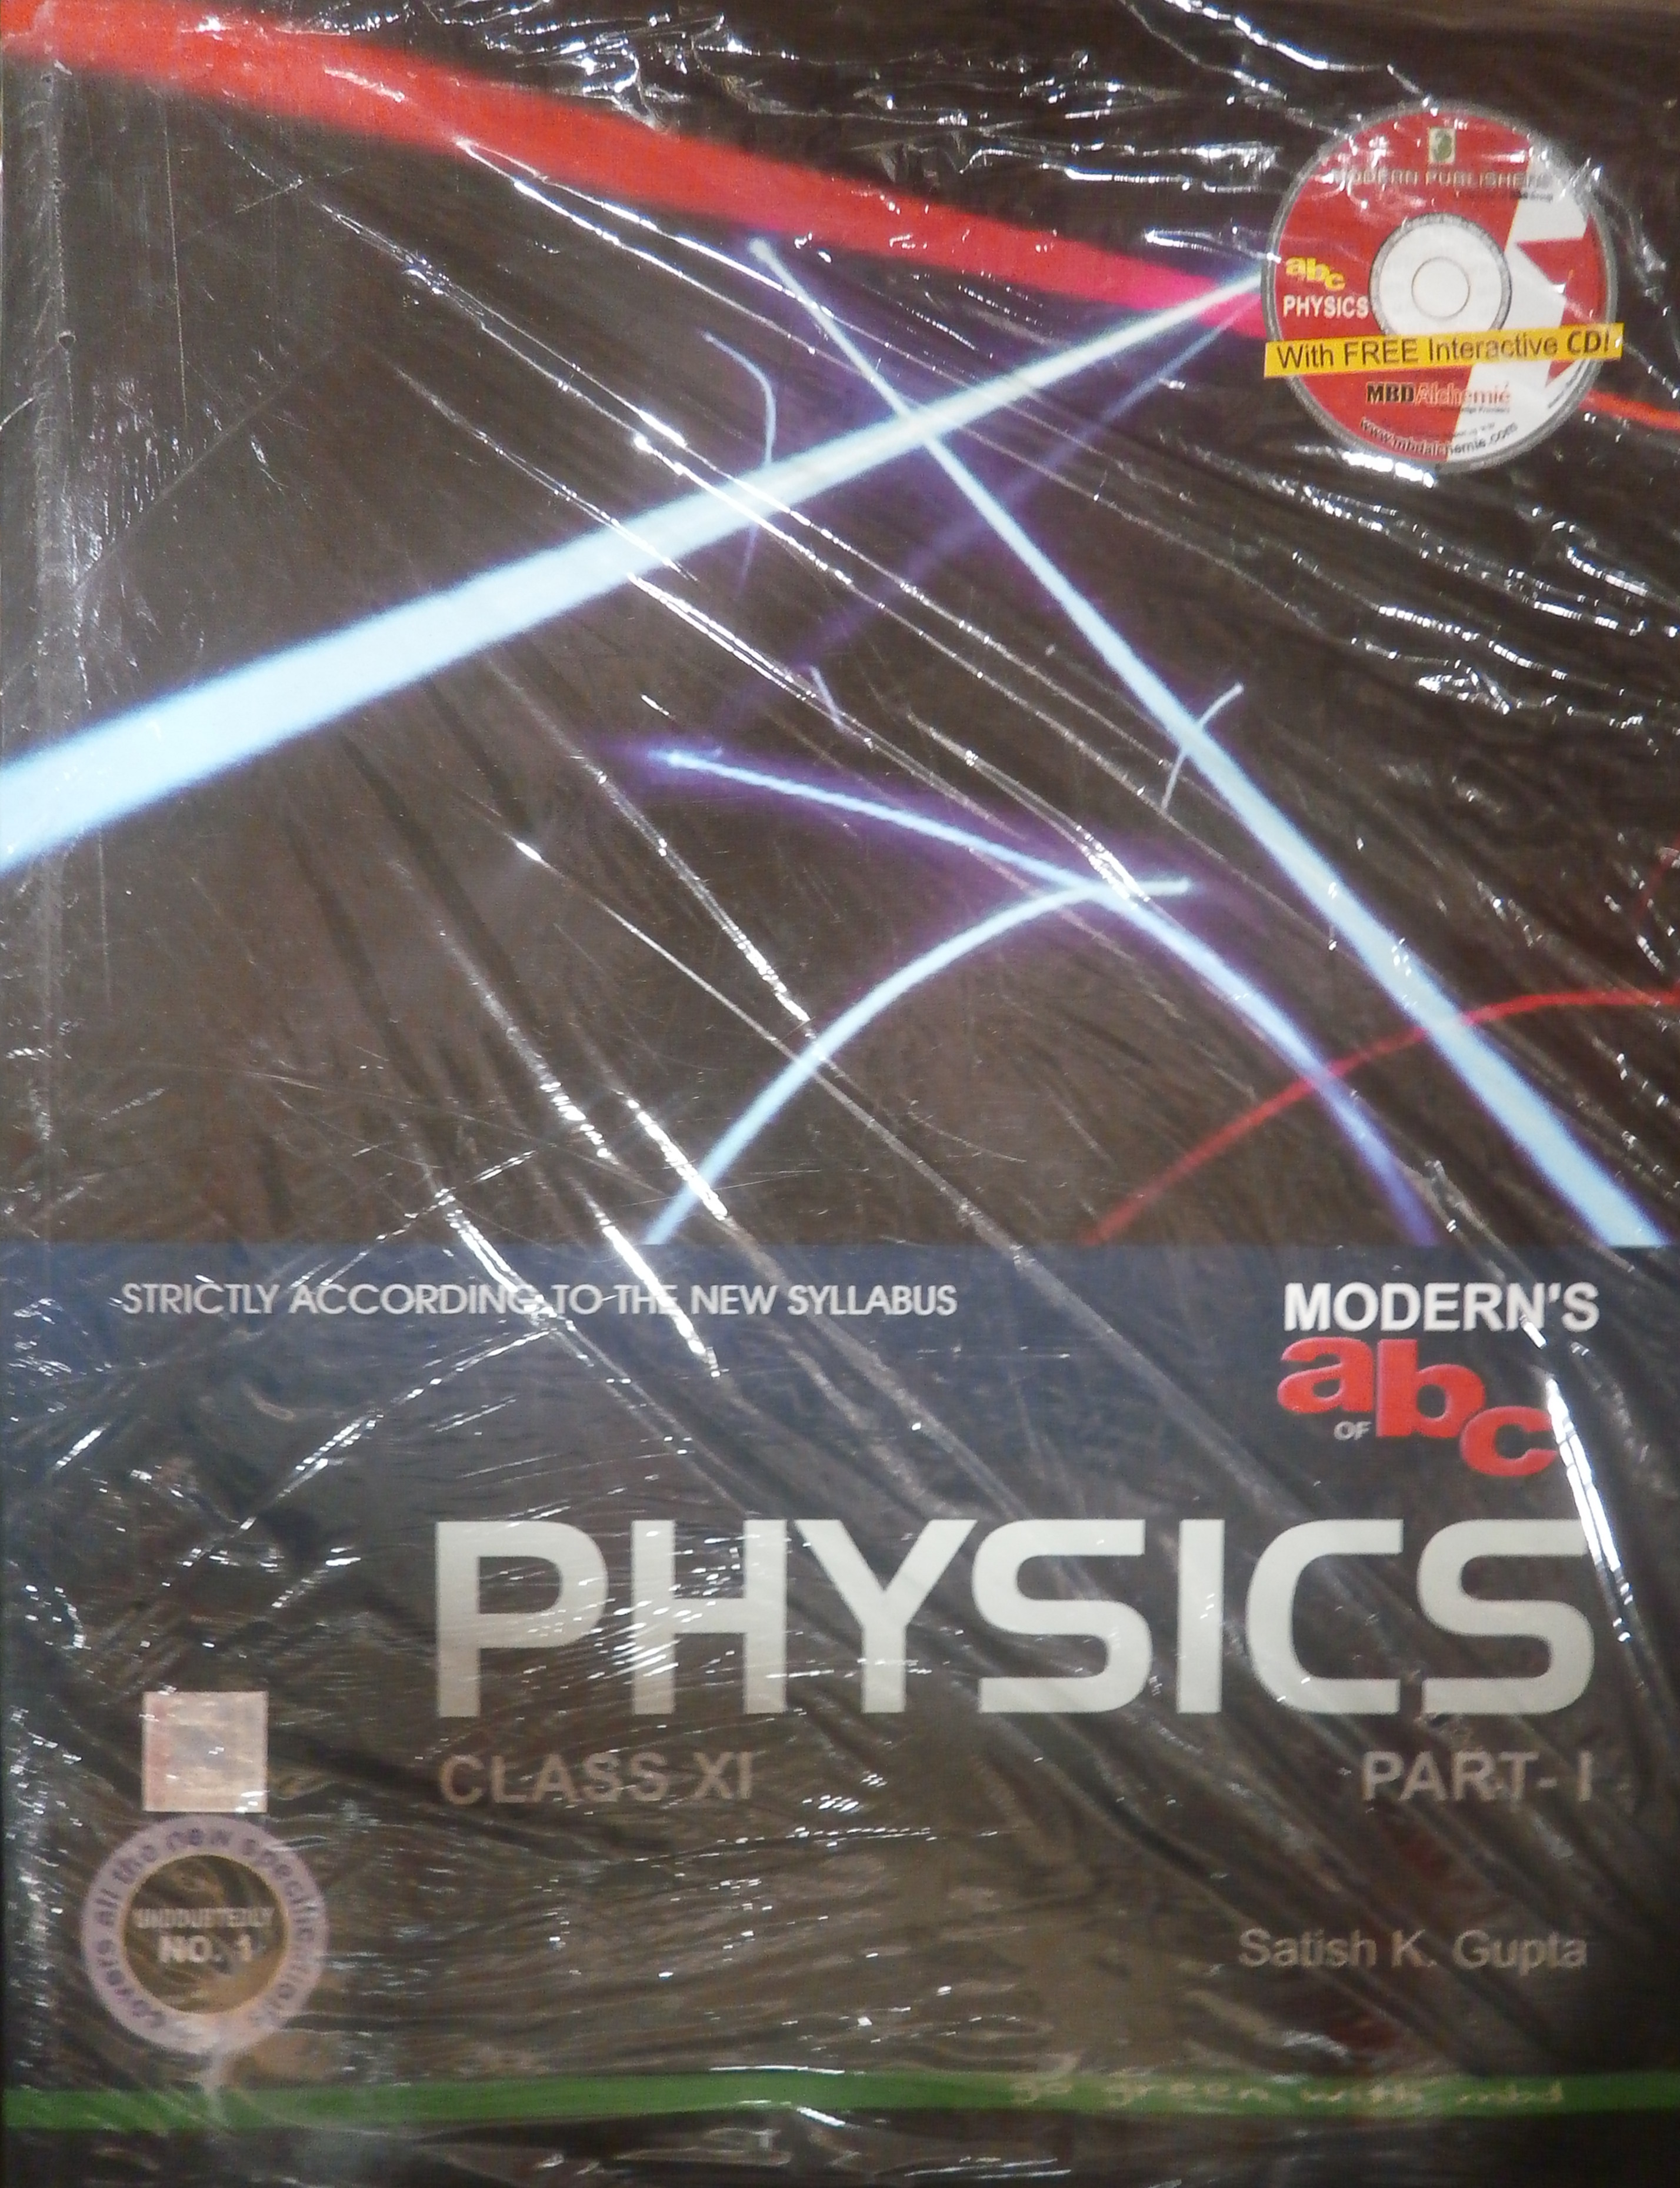 Modern's abc of Physics for Class - 11, Part - 1 & 2 (With CD) (English) 24th Edition (Paperback) price in India.